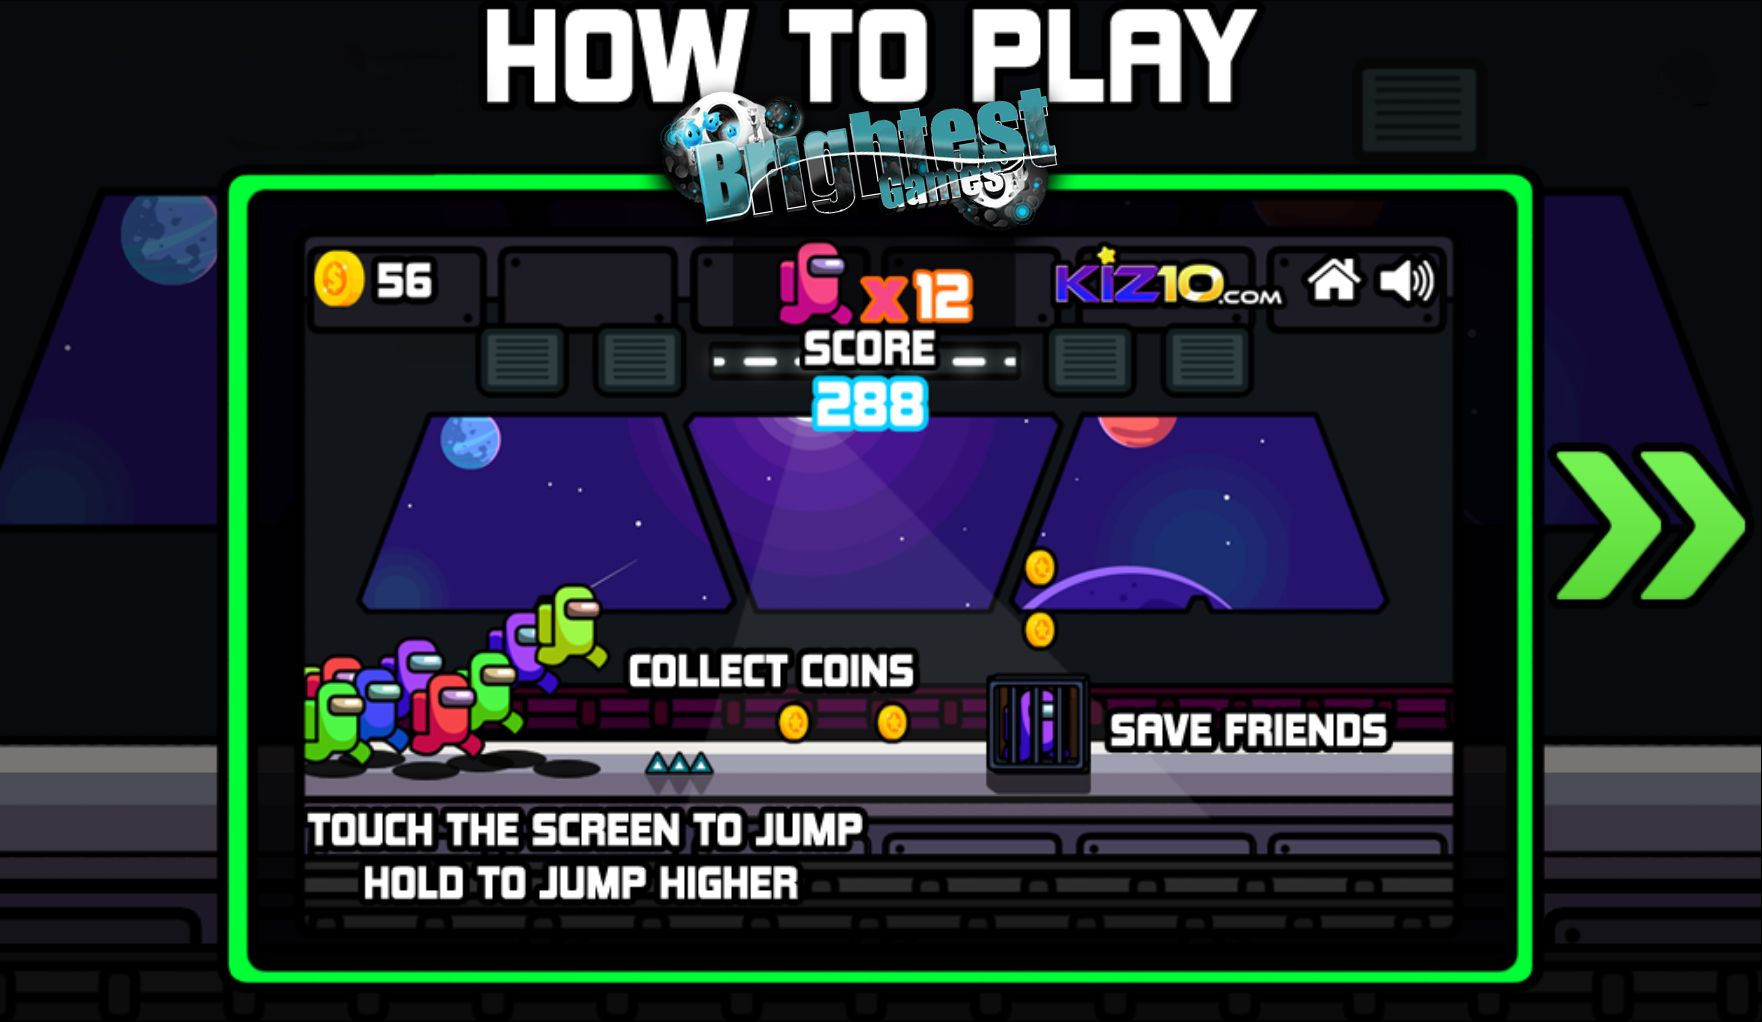 Play Among Us Space Rush Free Rush Games Addicting Games Survival Games